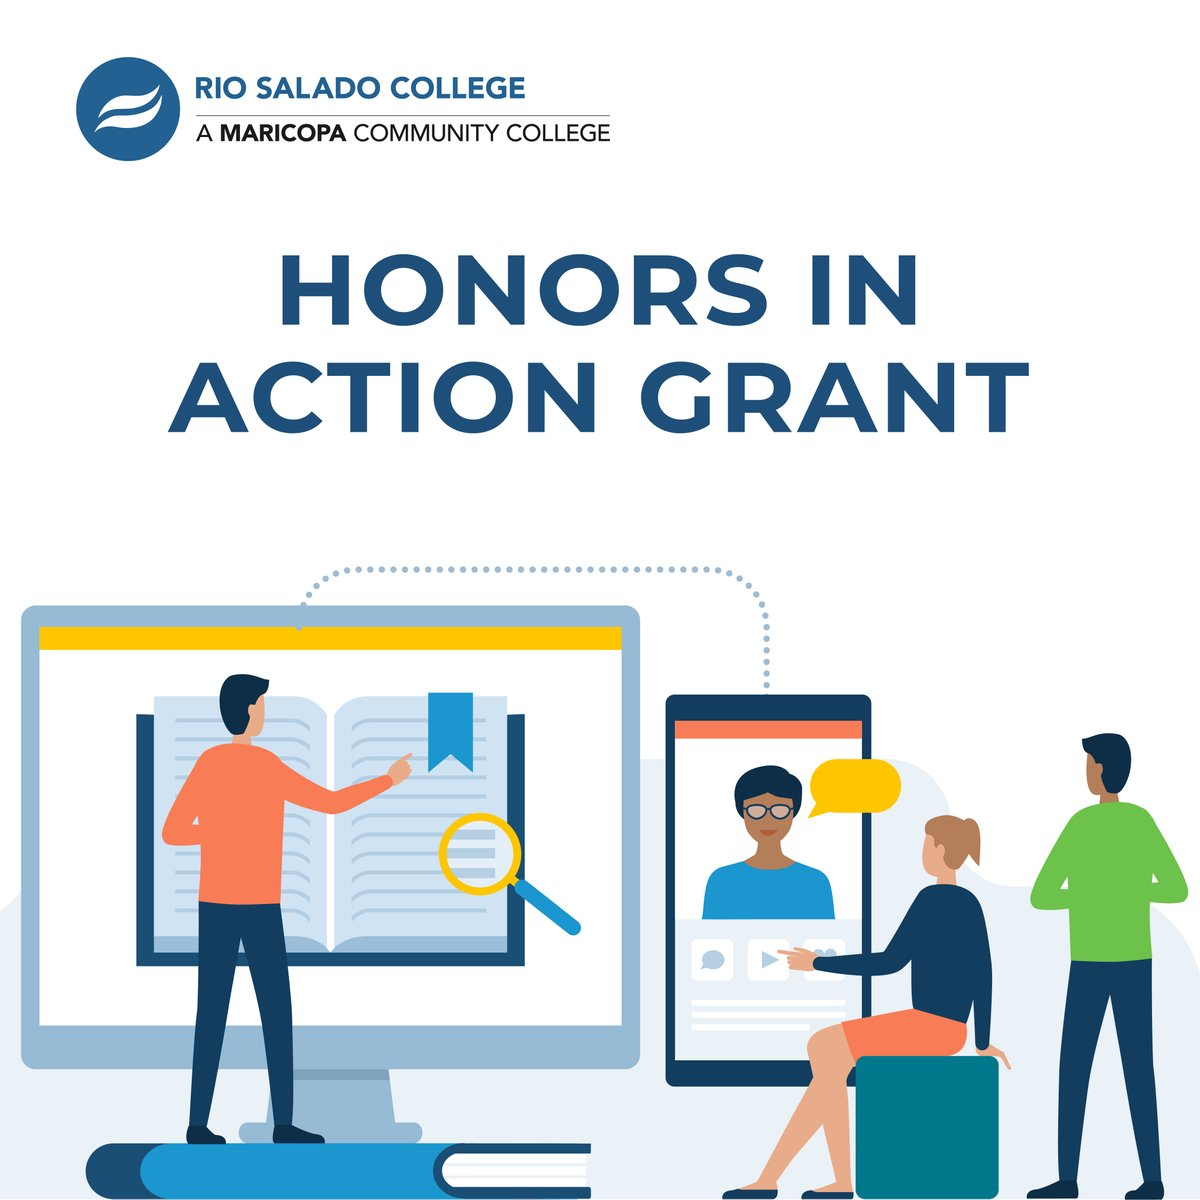 Our Phi Theta Kappa (PTK) chapter, Alpha Theta Omicron, is one of two 2020 PTK Honors in Action Grant recipients for the state of Arizona! Read about it more at the link below. https://t.co/Nq6VKPJkrP https://t.co/e7zx9L1quJ